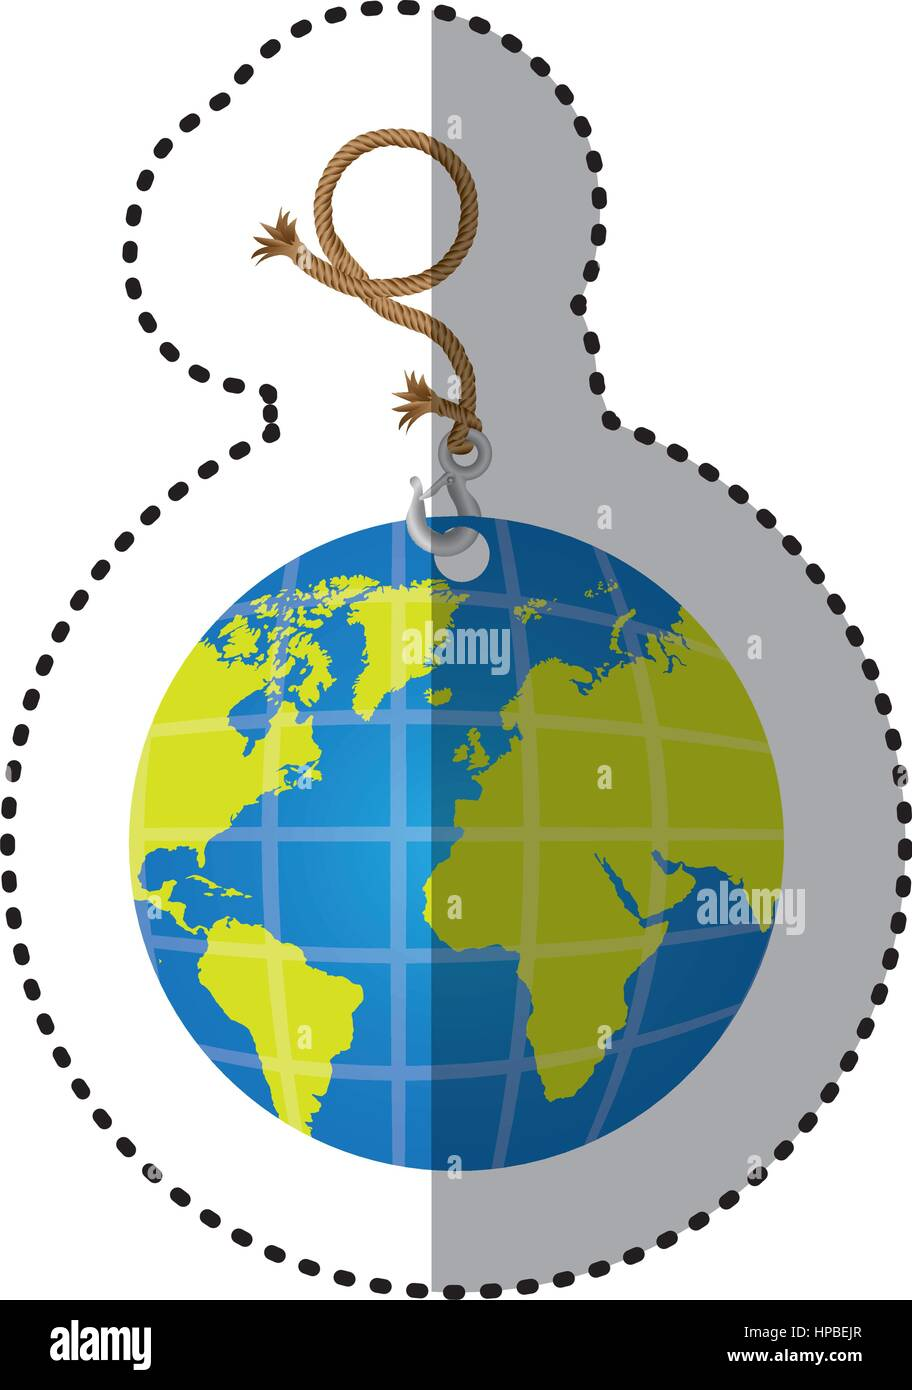 Sticker hanging rope with metal hook and earth world map stock sticker hanging rope with metal hook and earth world map gumiabroncs Images